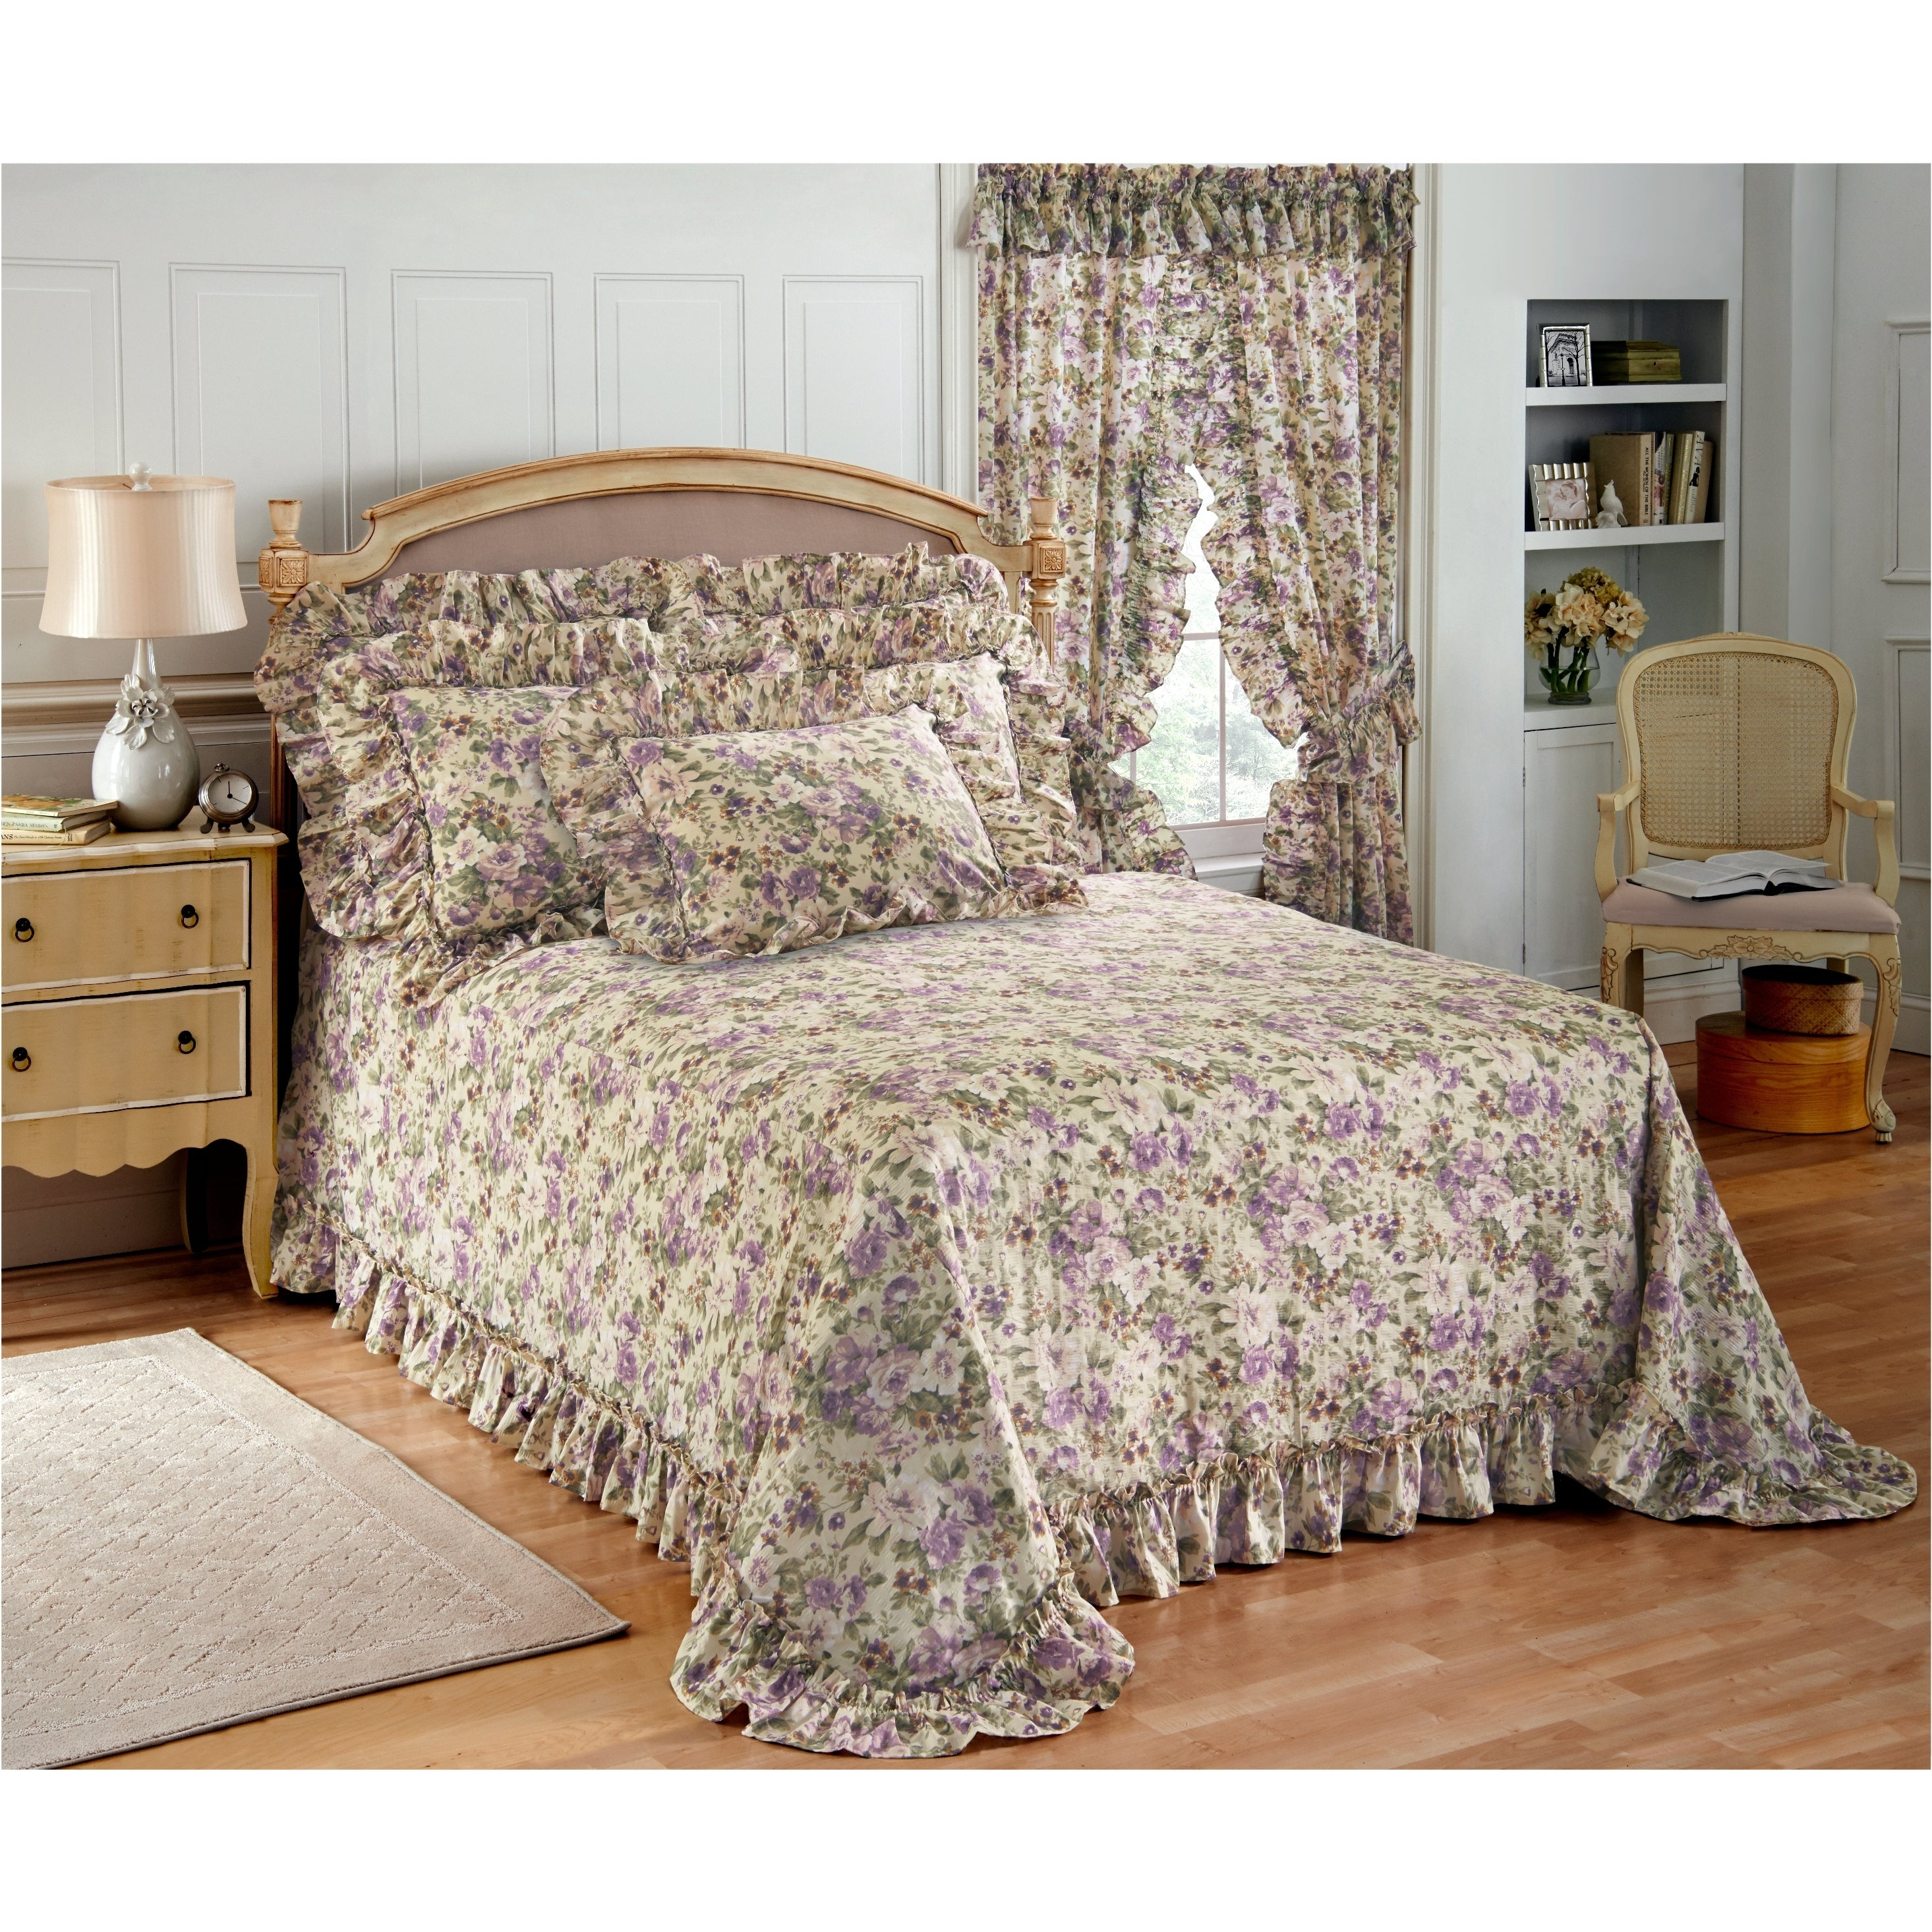 Madison The Gray Barn Crooked Creek Bedspread (Queen), Pu...